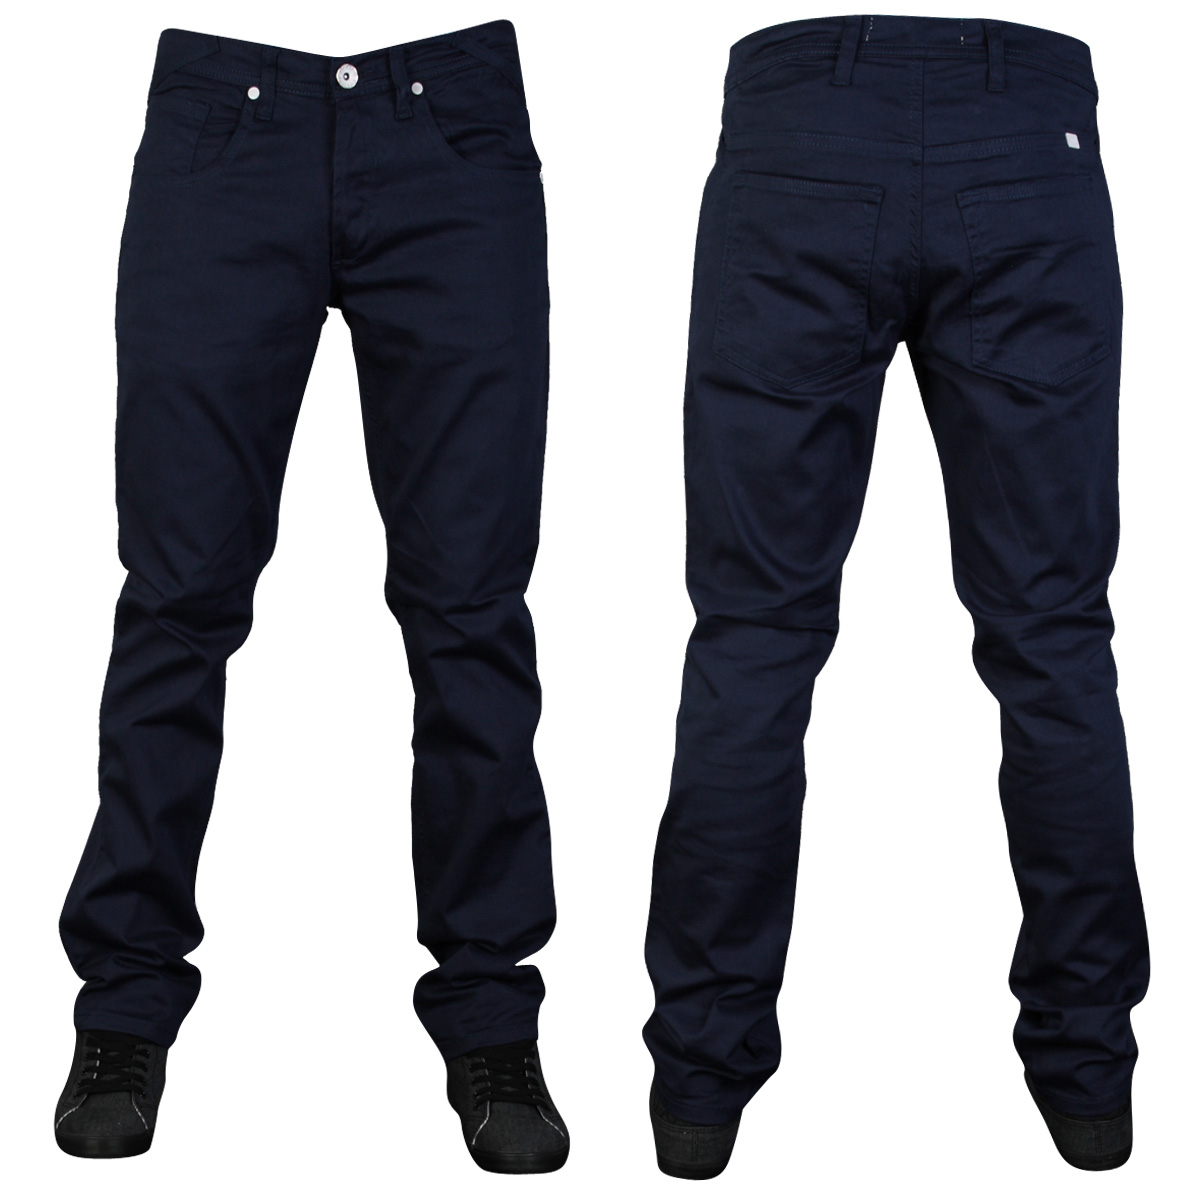 NEW-MENS-ZICO-SKINNY-TWILL-DESIGNER-SLIM-FIT-CHINOS-JEANS-ALL-WAIST-LEG-SIZES